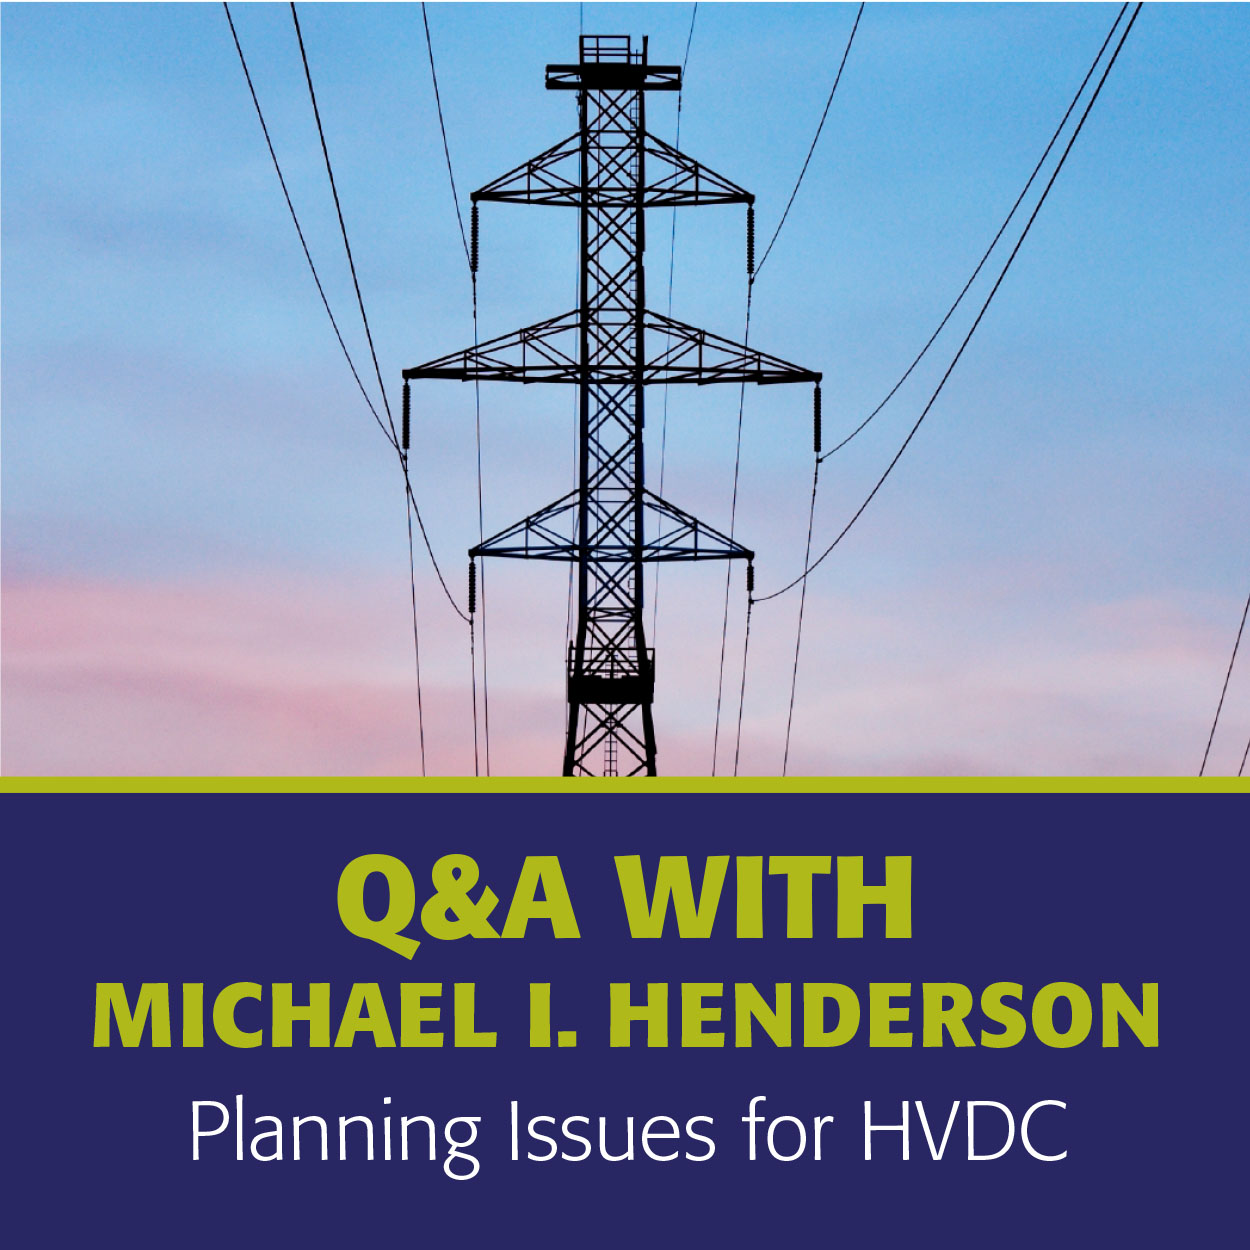 Q&A with Michael I. Henderson